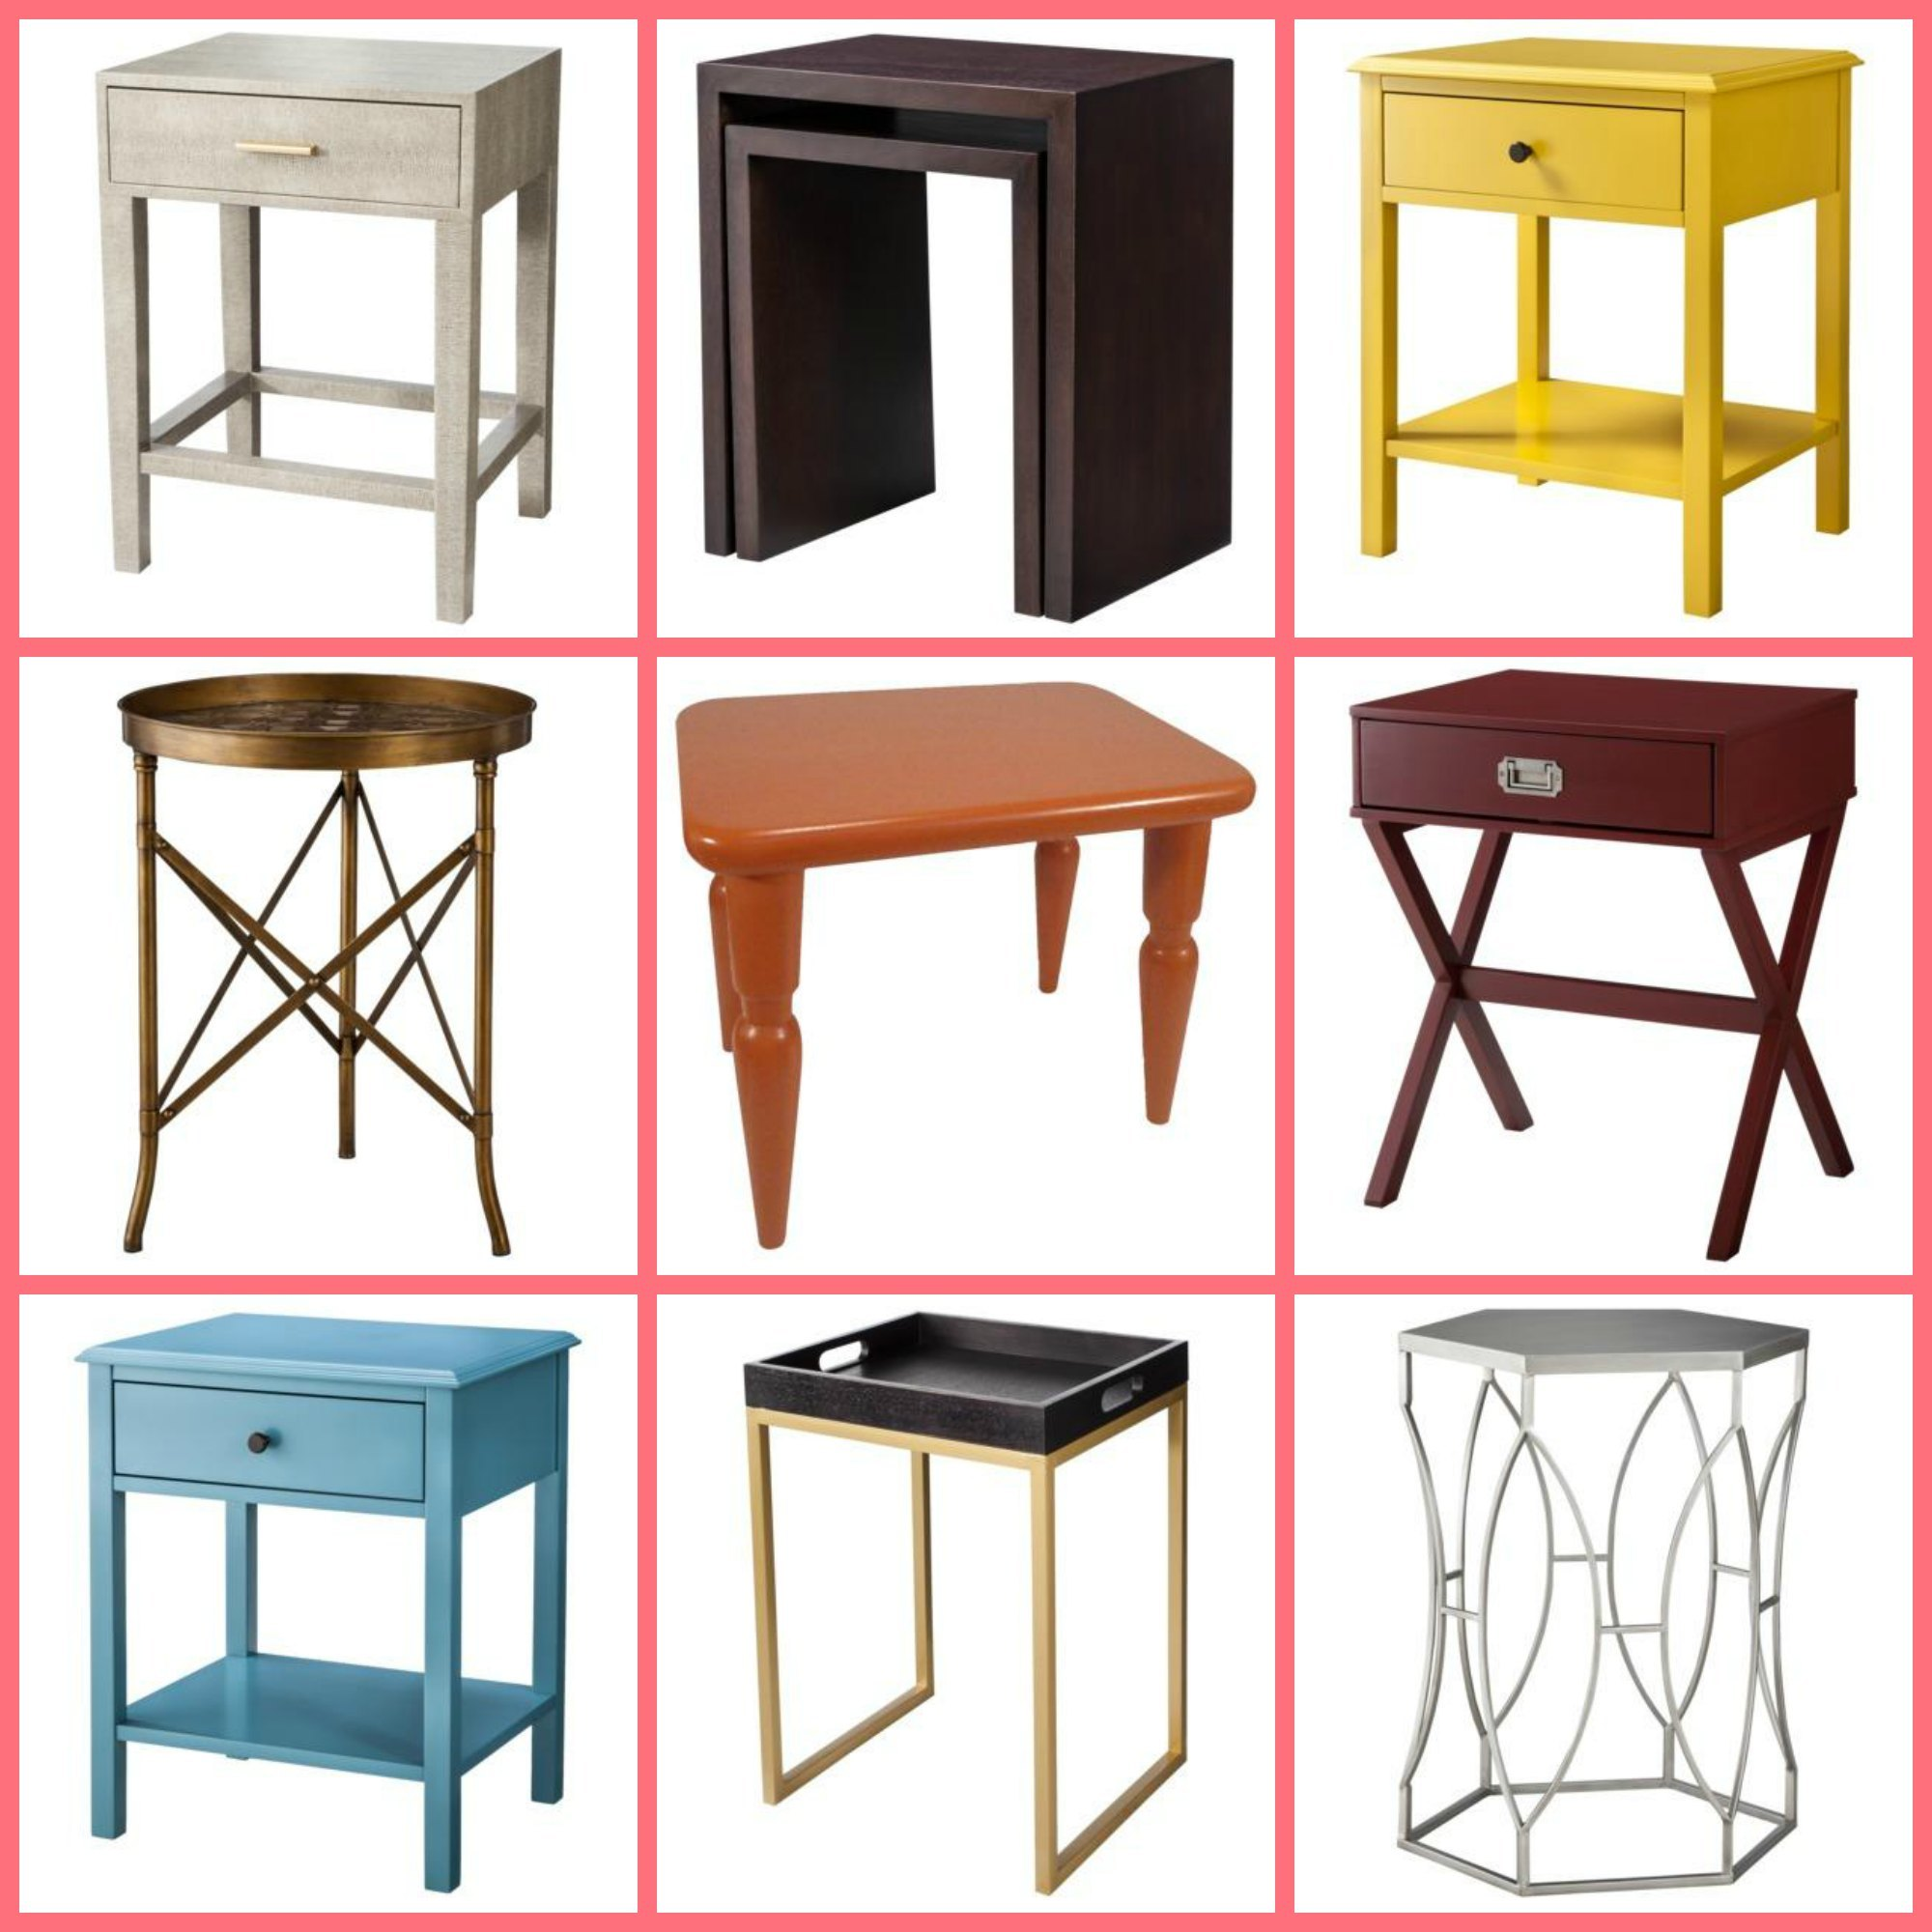 target threshold accent tables take your targertthr windham table clockwise from top left battery operated led lamps weber kettle mini side concrete dining room rustic gray pier